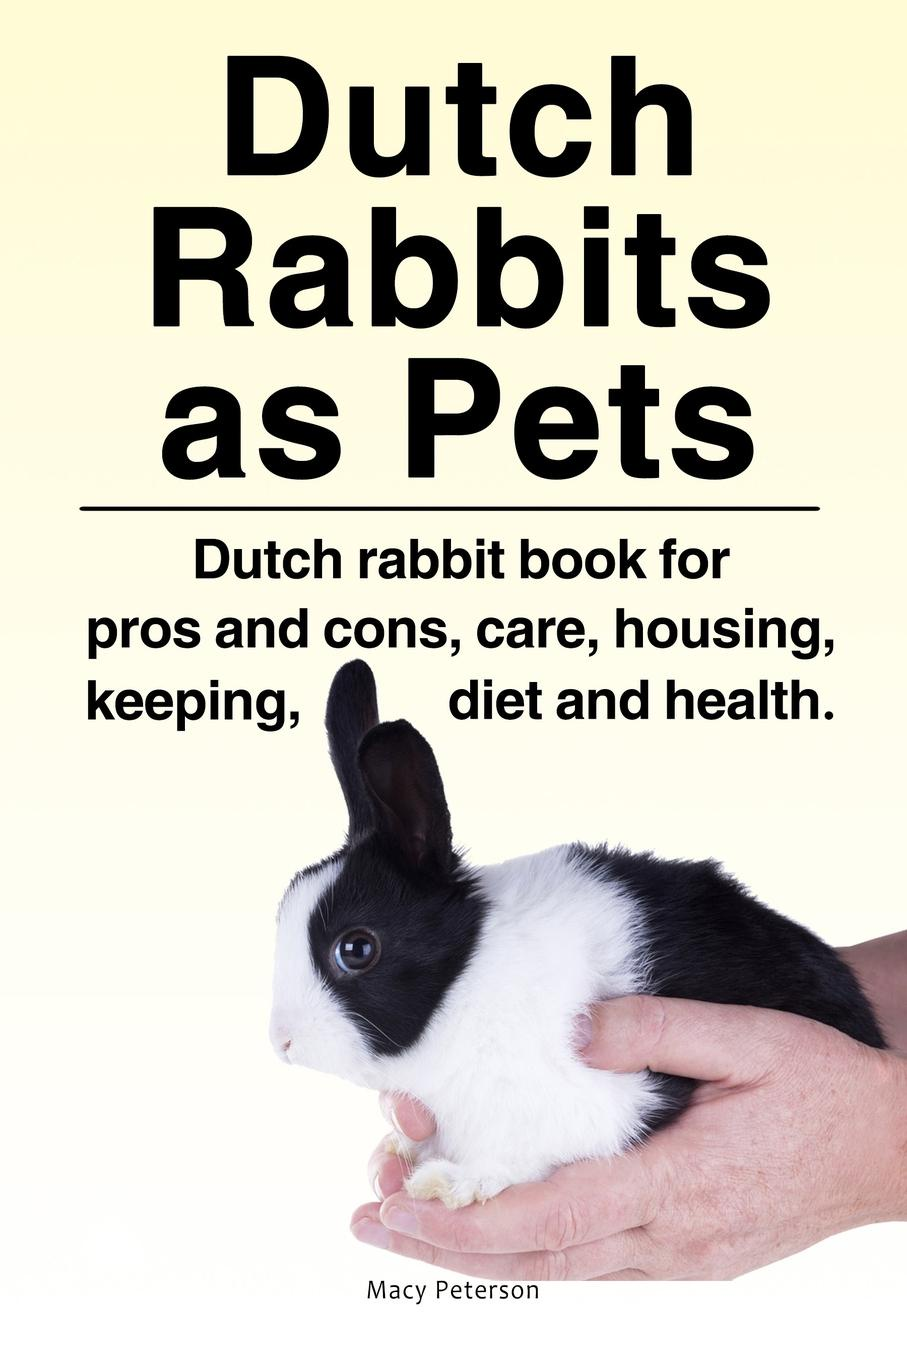 Macy Peterson Dutch Rabbits. Dutch Rabbits as Pets. Dutch rabbit book for pros and cons, care, housing, keeping, diet and health.